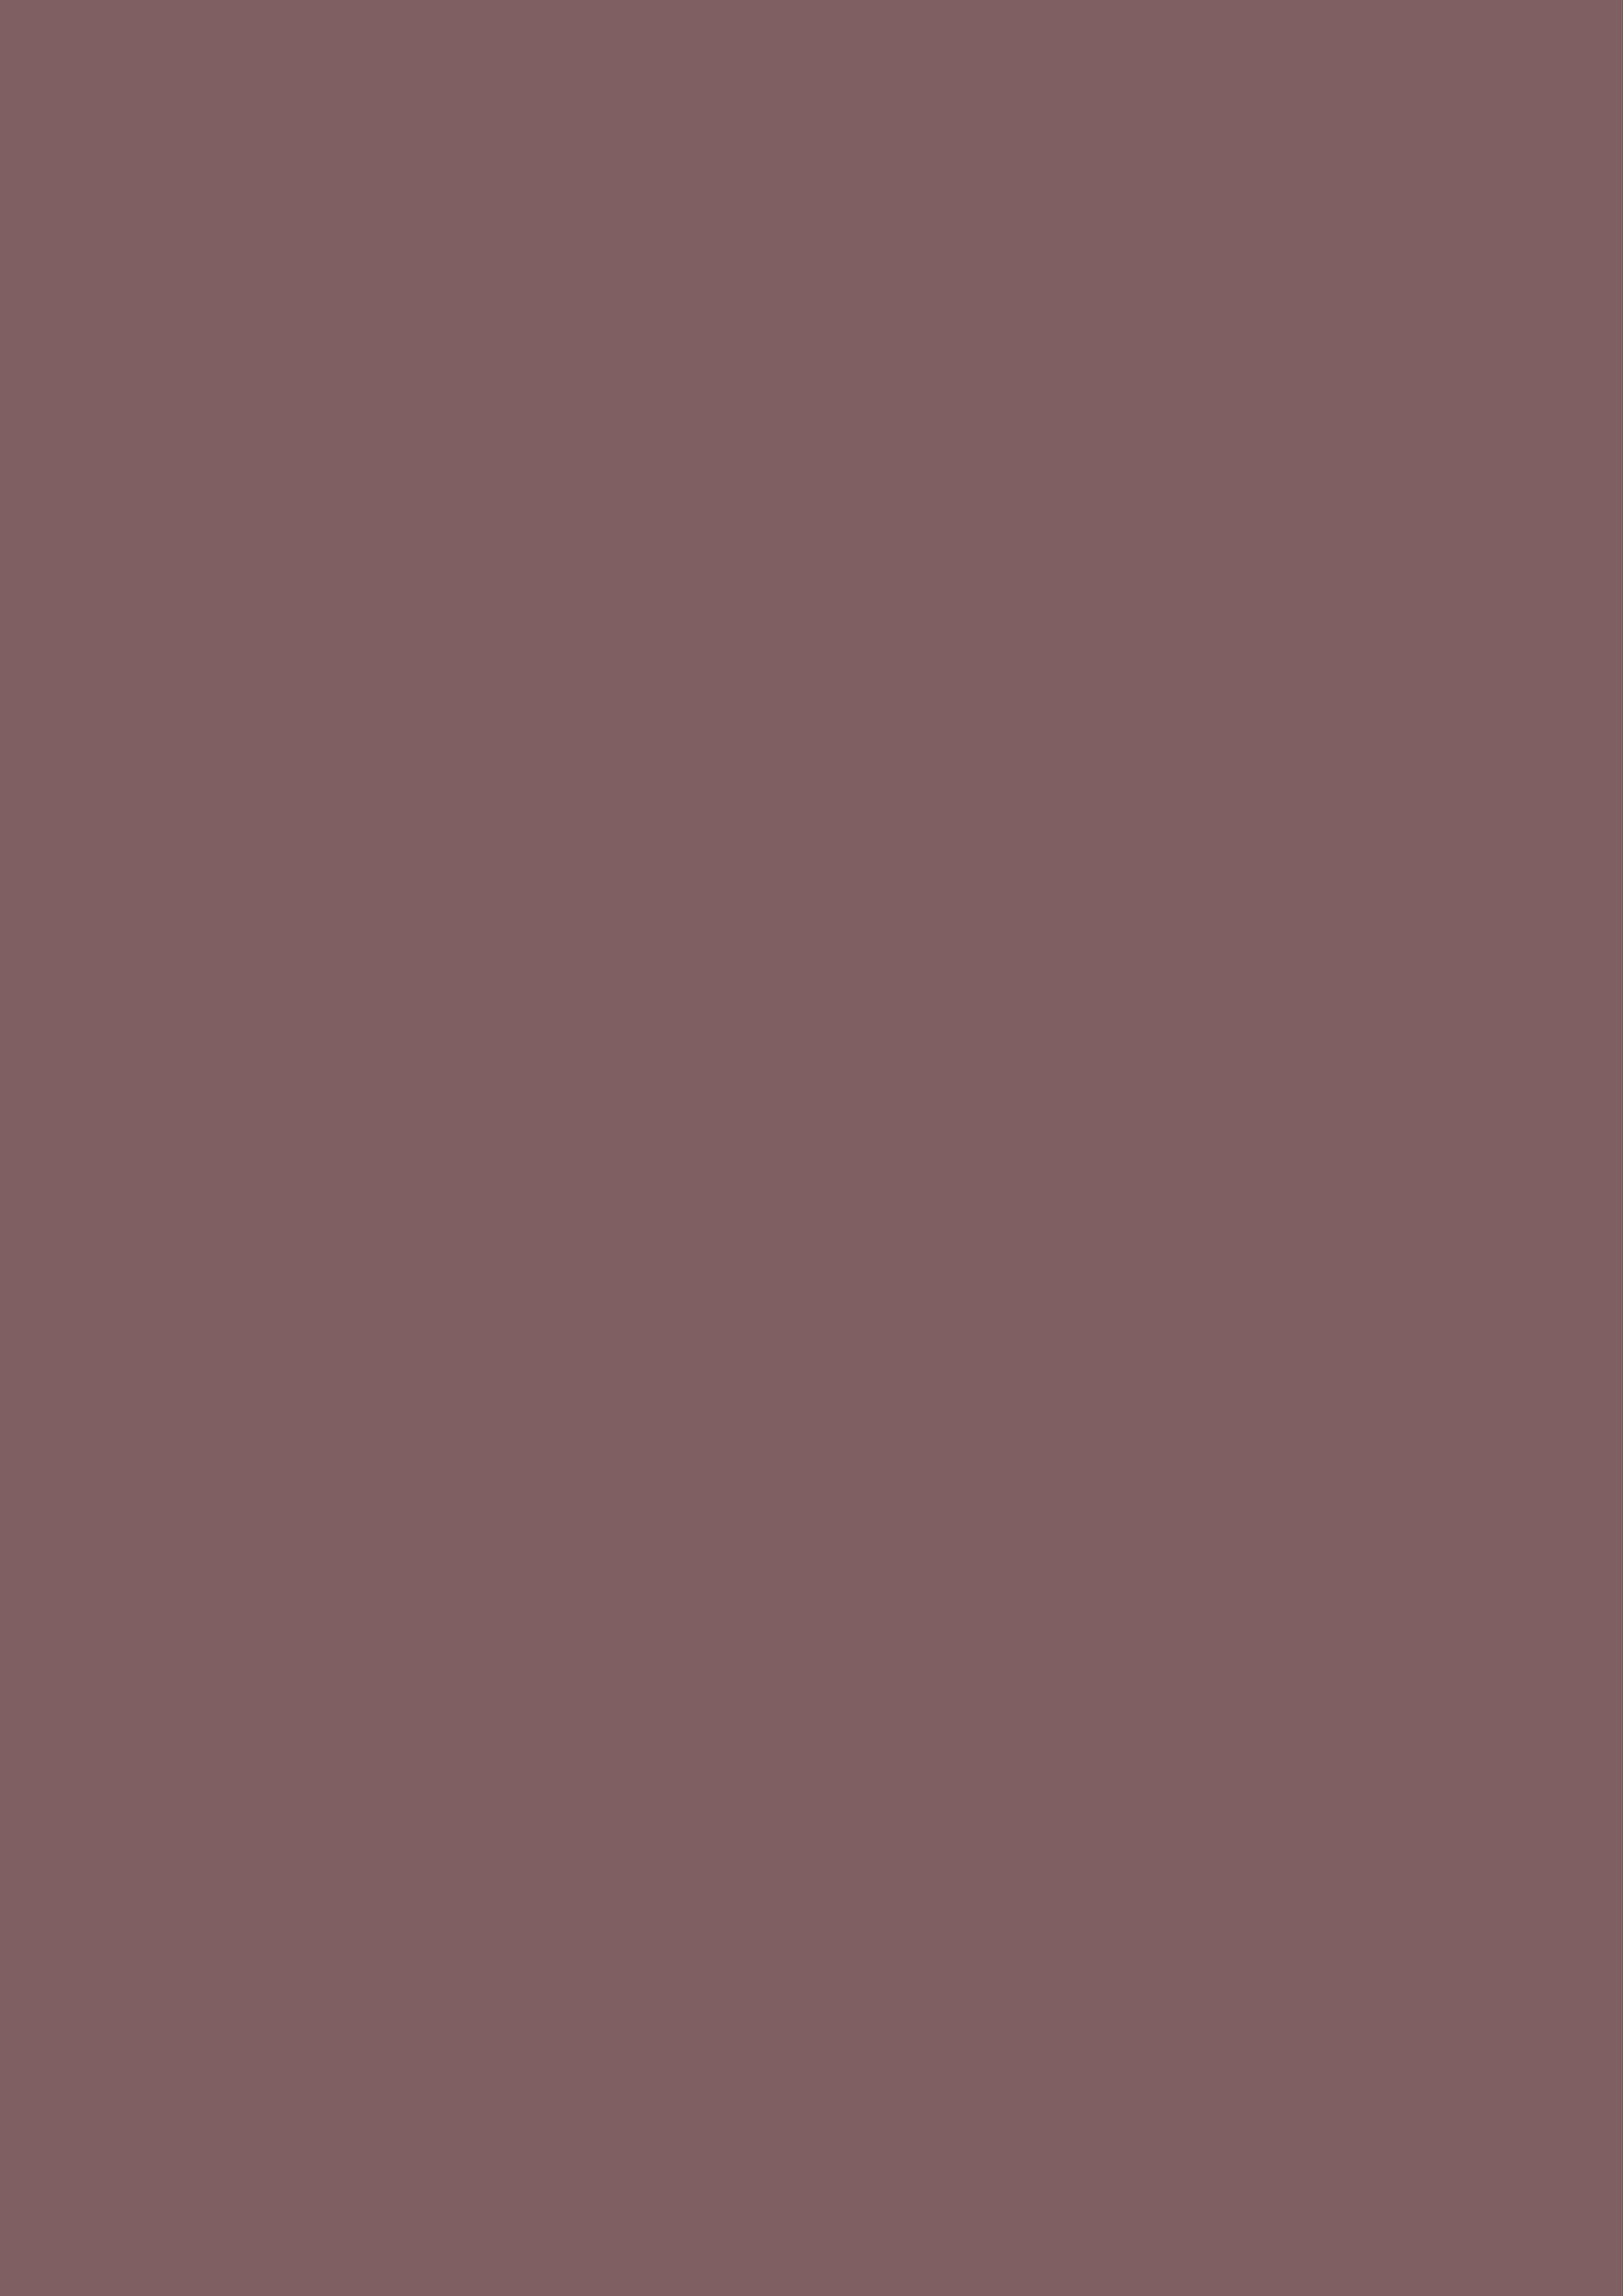 2480x3508 Deep Taupe Solid Color Background